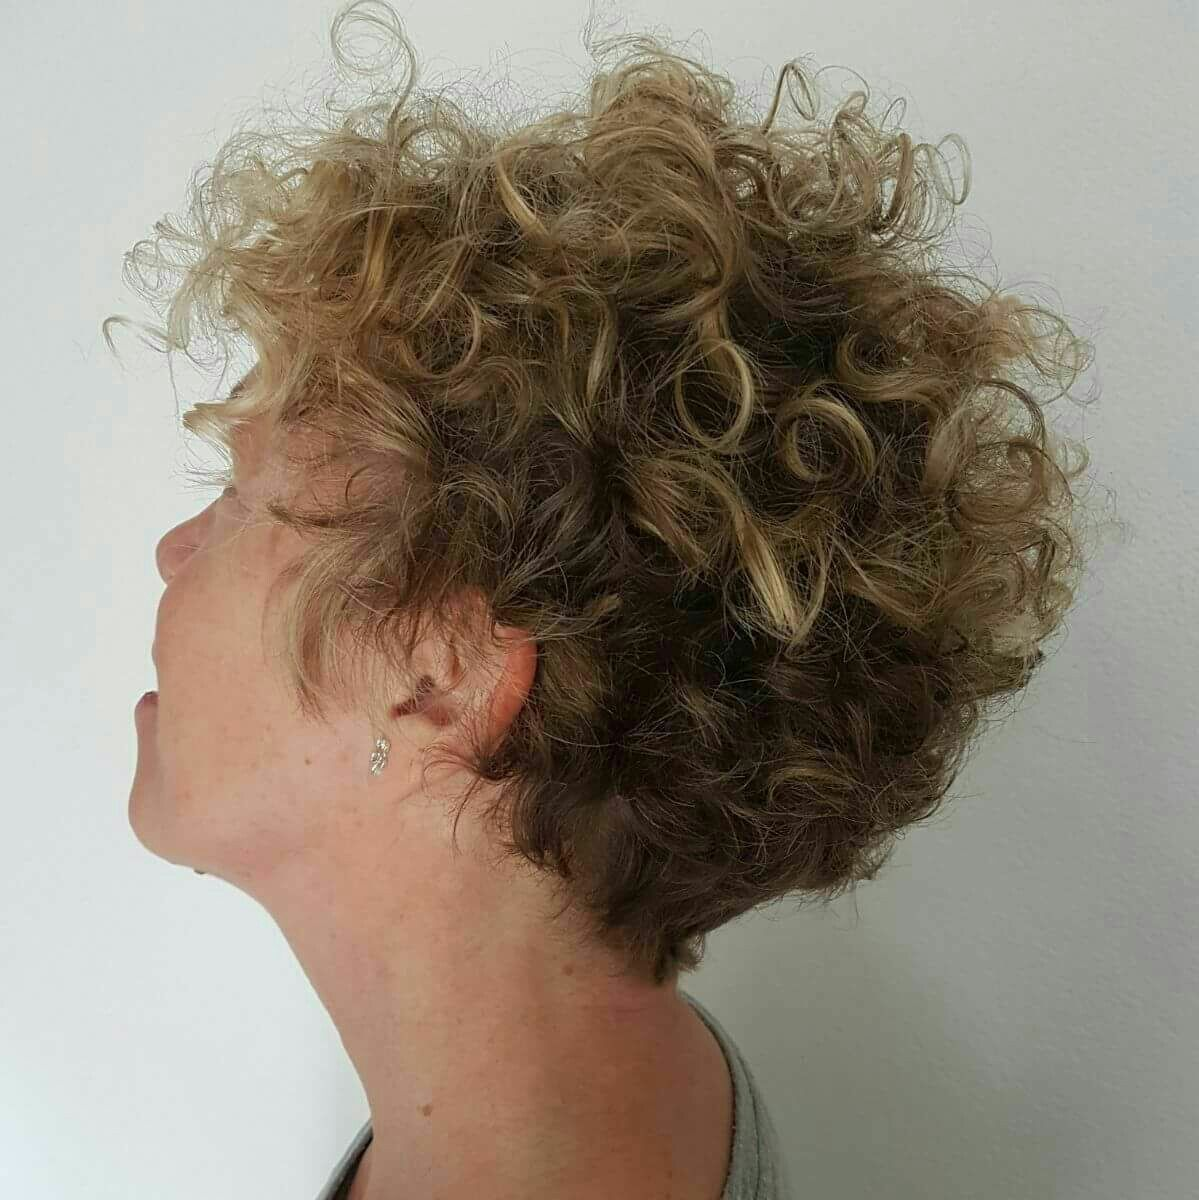 admire wedge hairstyles that should try in 2021 24